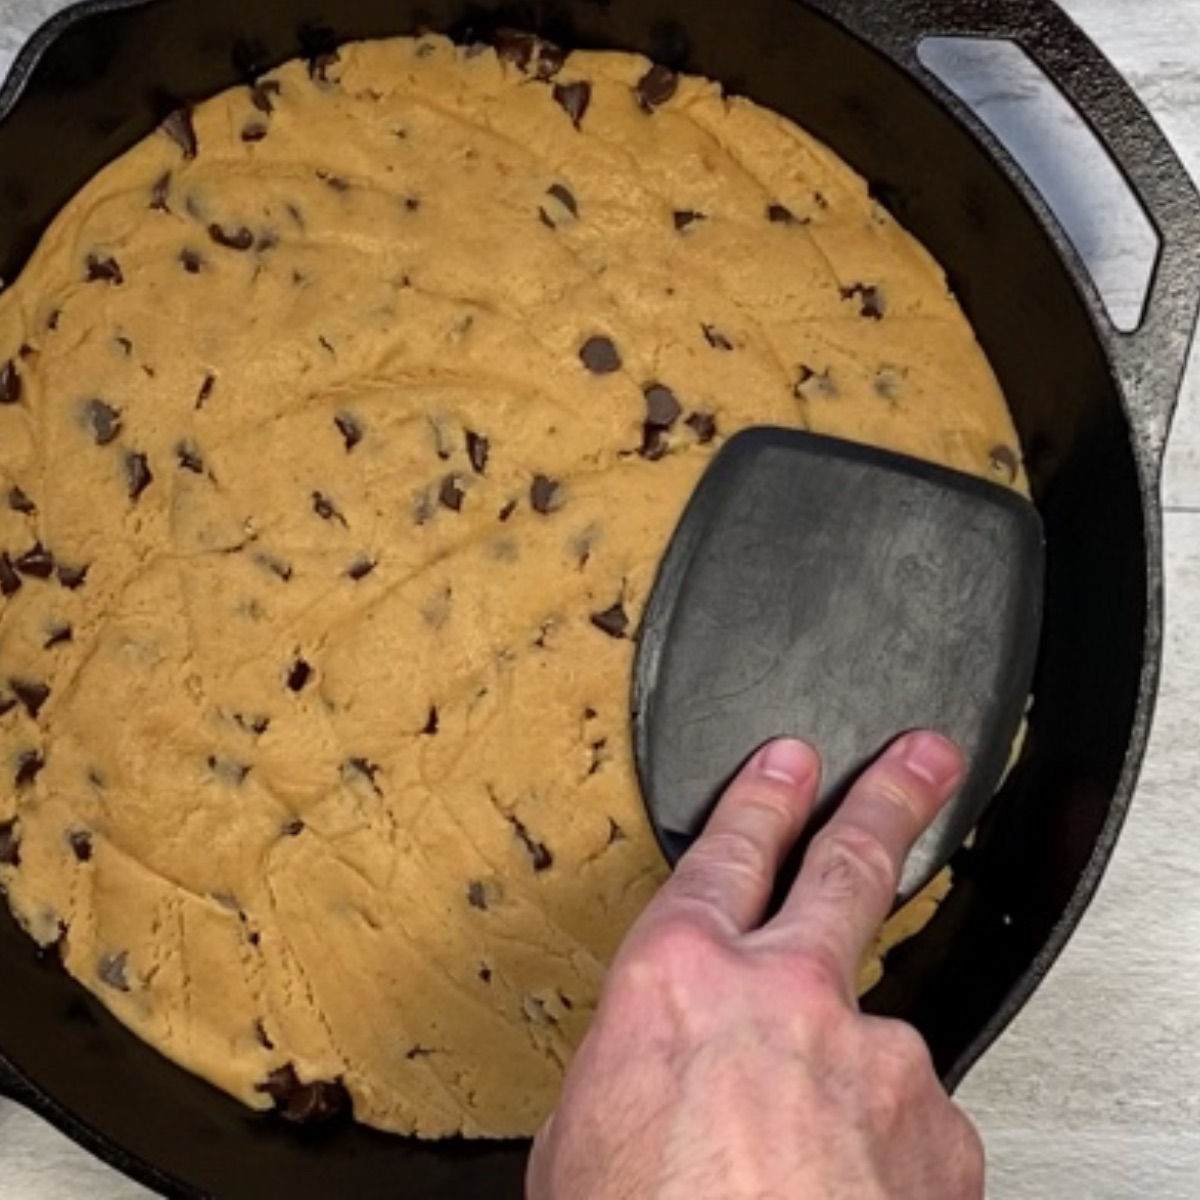 Overhead image showing how to use the underside of a spatula to press the raw cookie dough to an even thickness in the cast iron skillet.